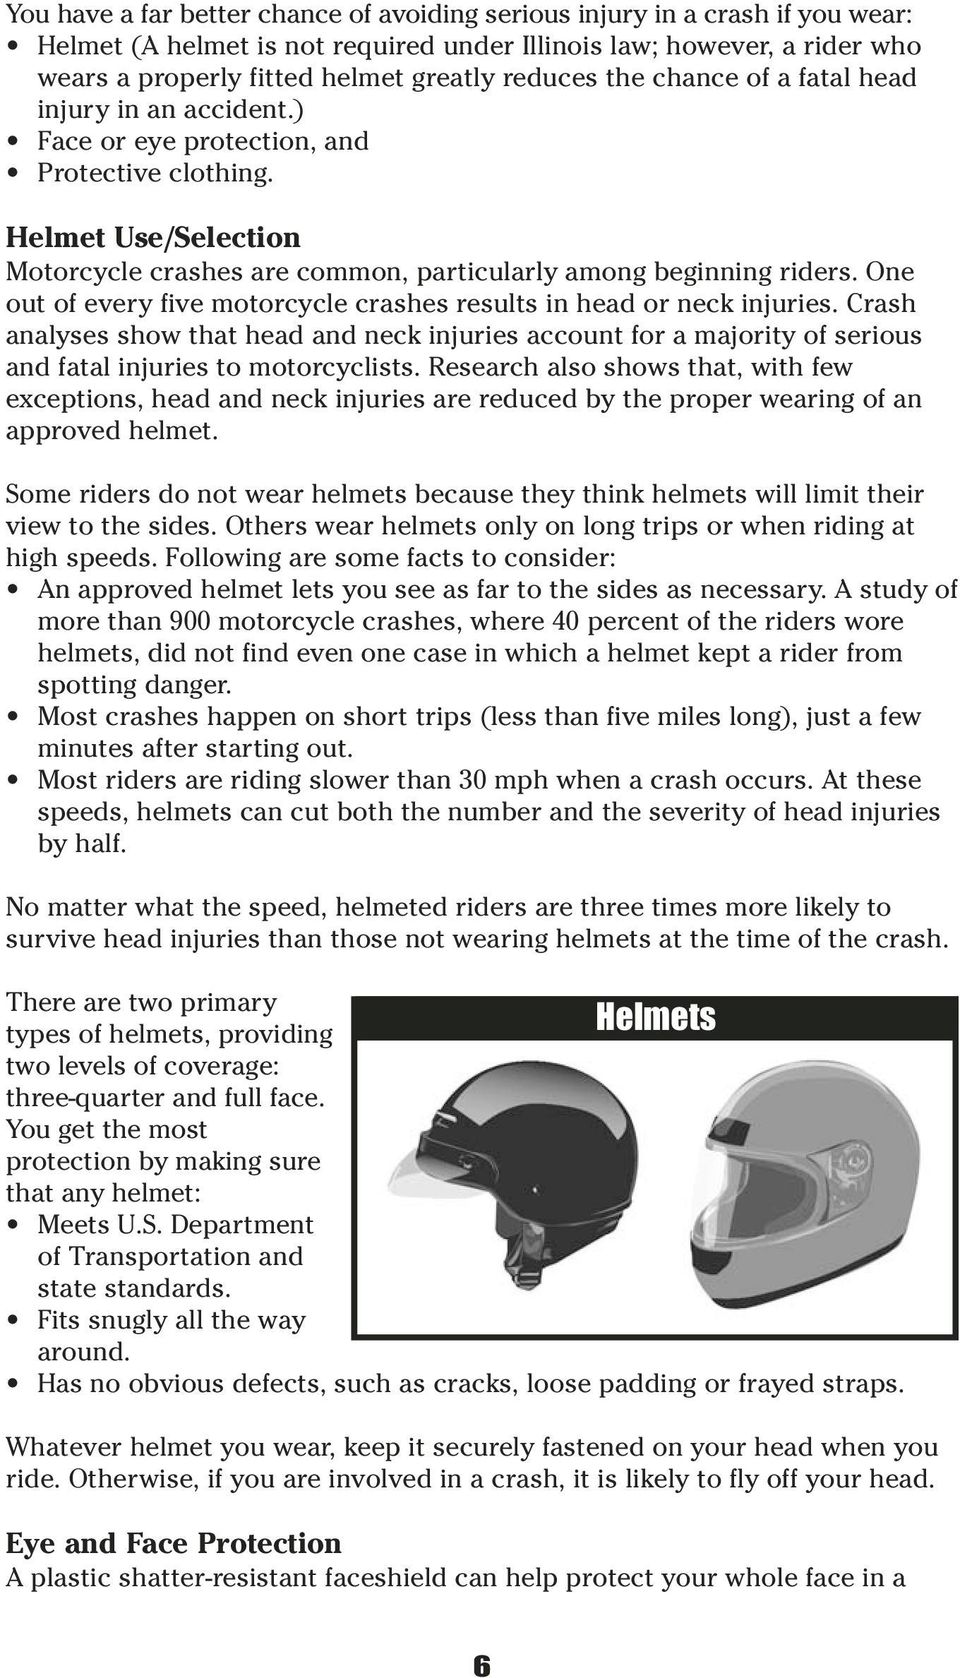 One out of every five motorcycle crashes results in head or neck injuries. Crash analyses show that head and neck injuries account for a majority of serious and fatal injuries to motorcyclists.